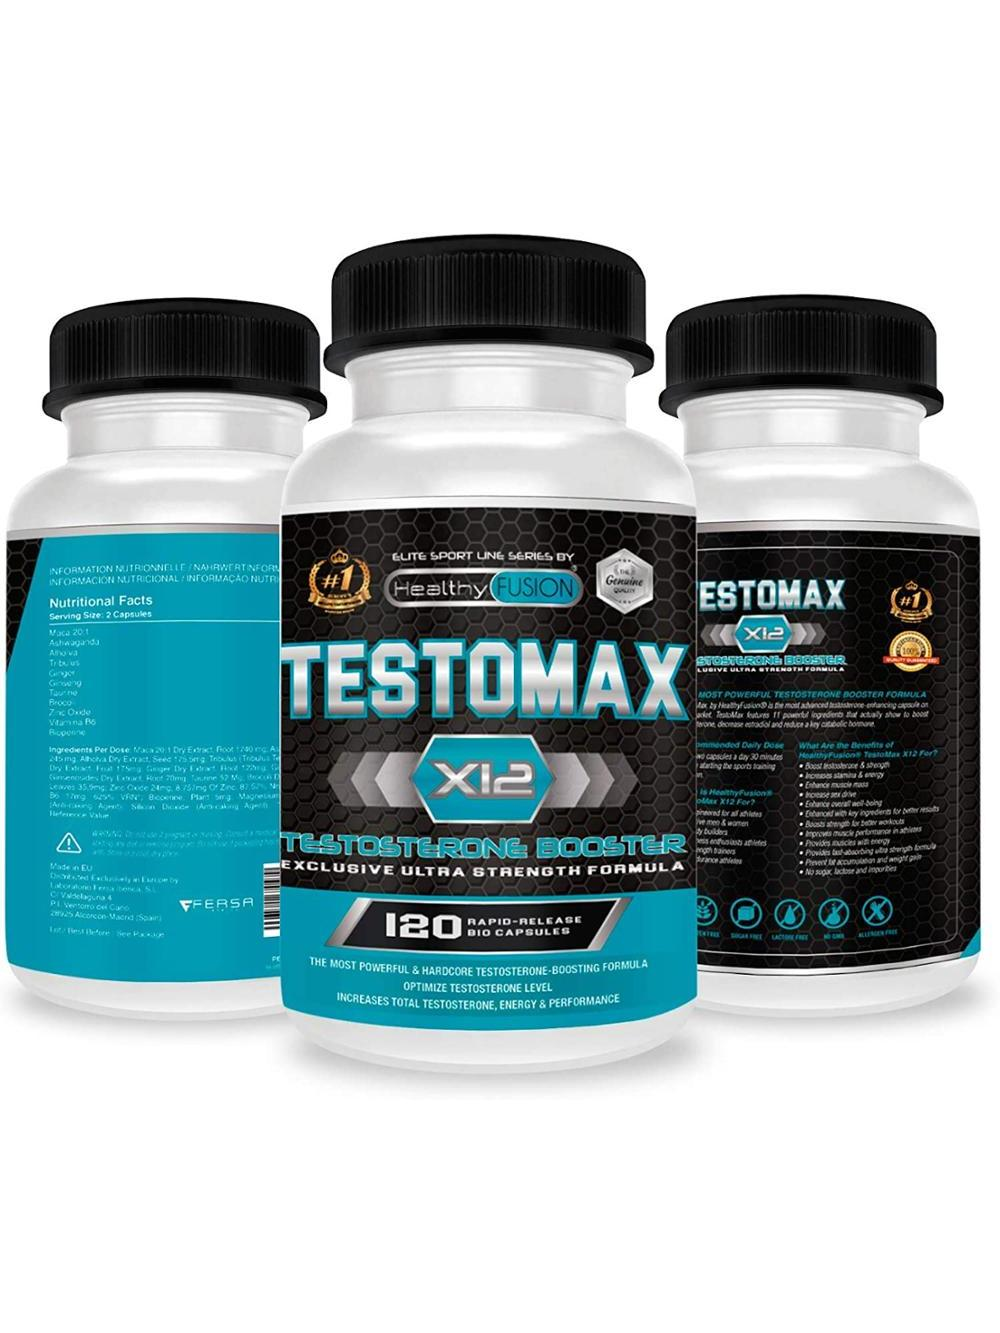 Potent Booster pure testosterone | Maca Andean and taurine | Increases the mass, the performance and the Libido | 120 Caps 4